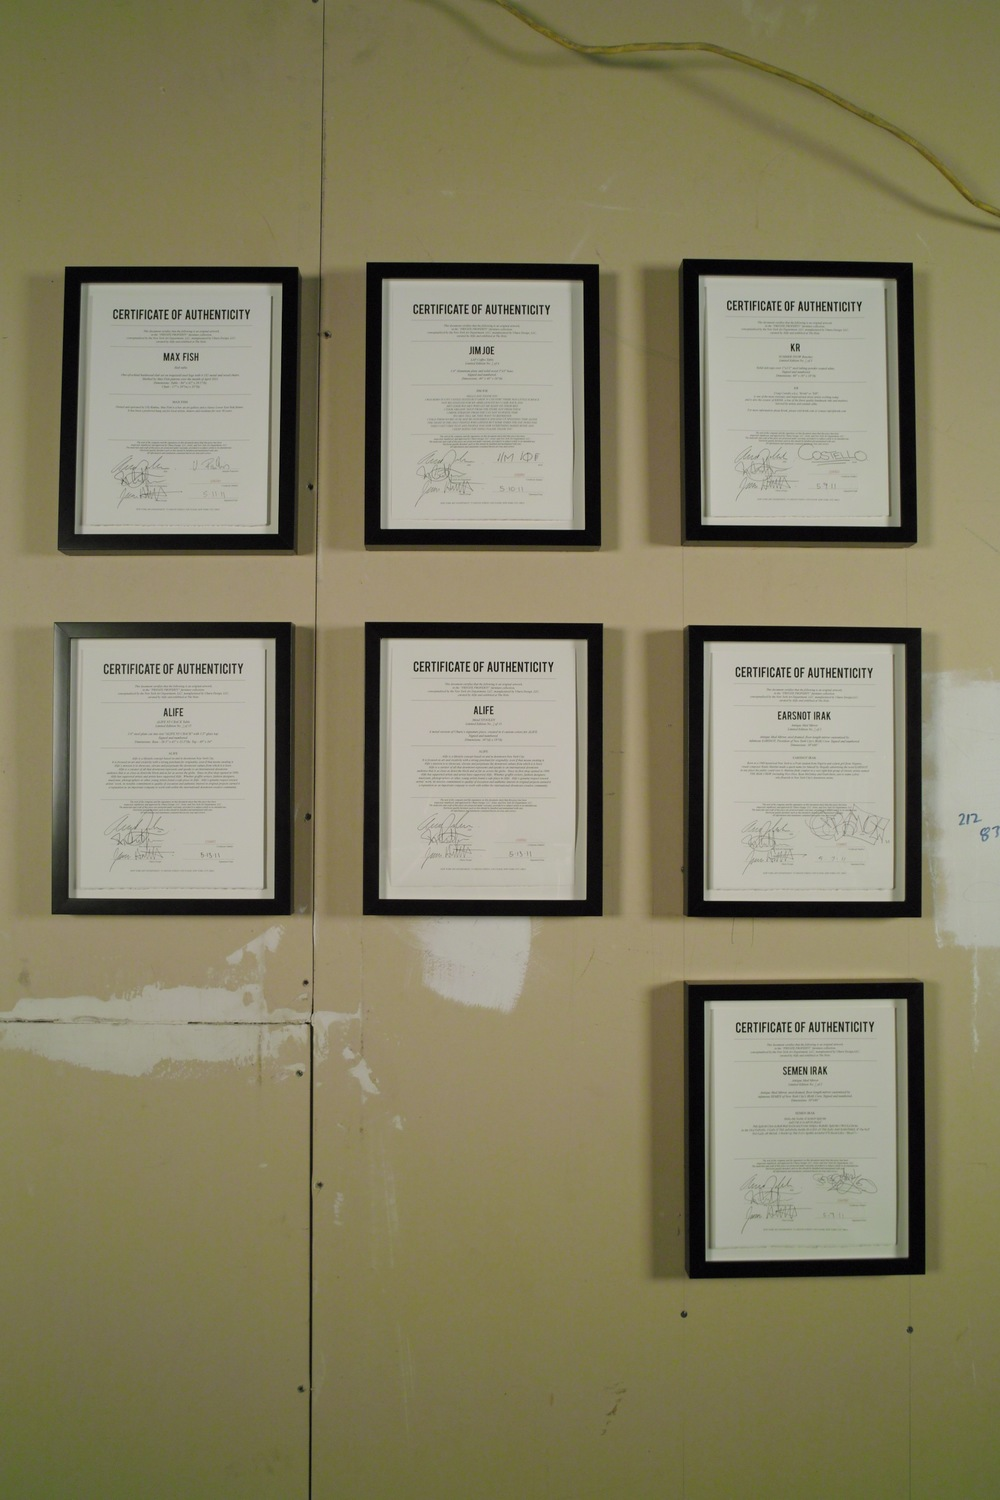 Private Property Certificates of Authenticity